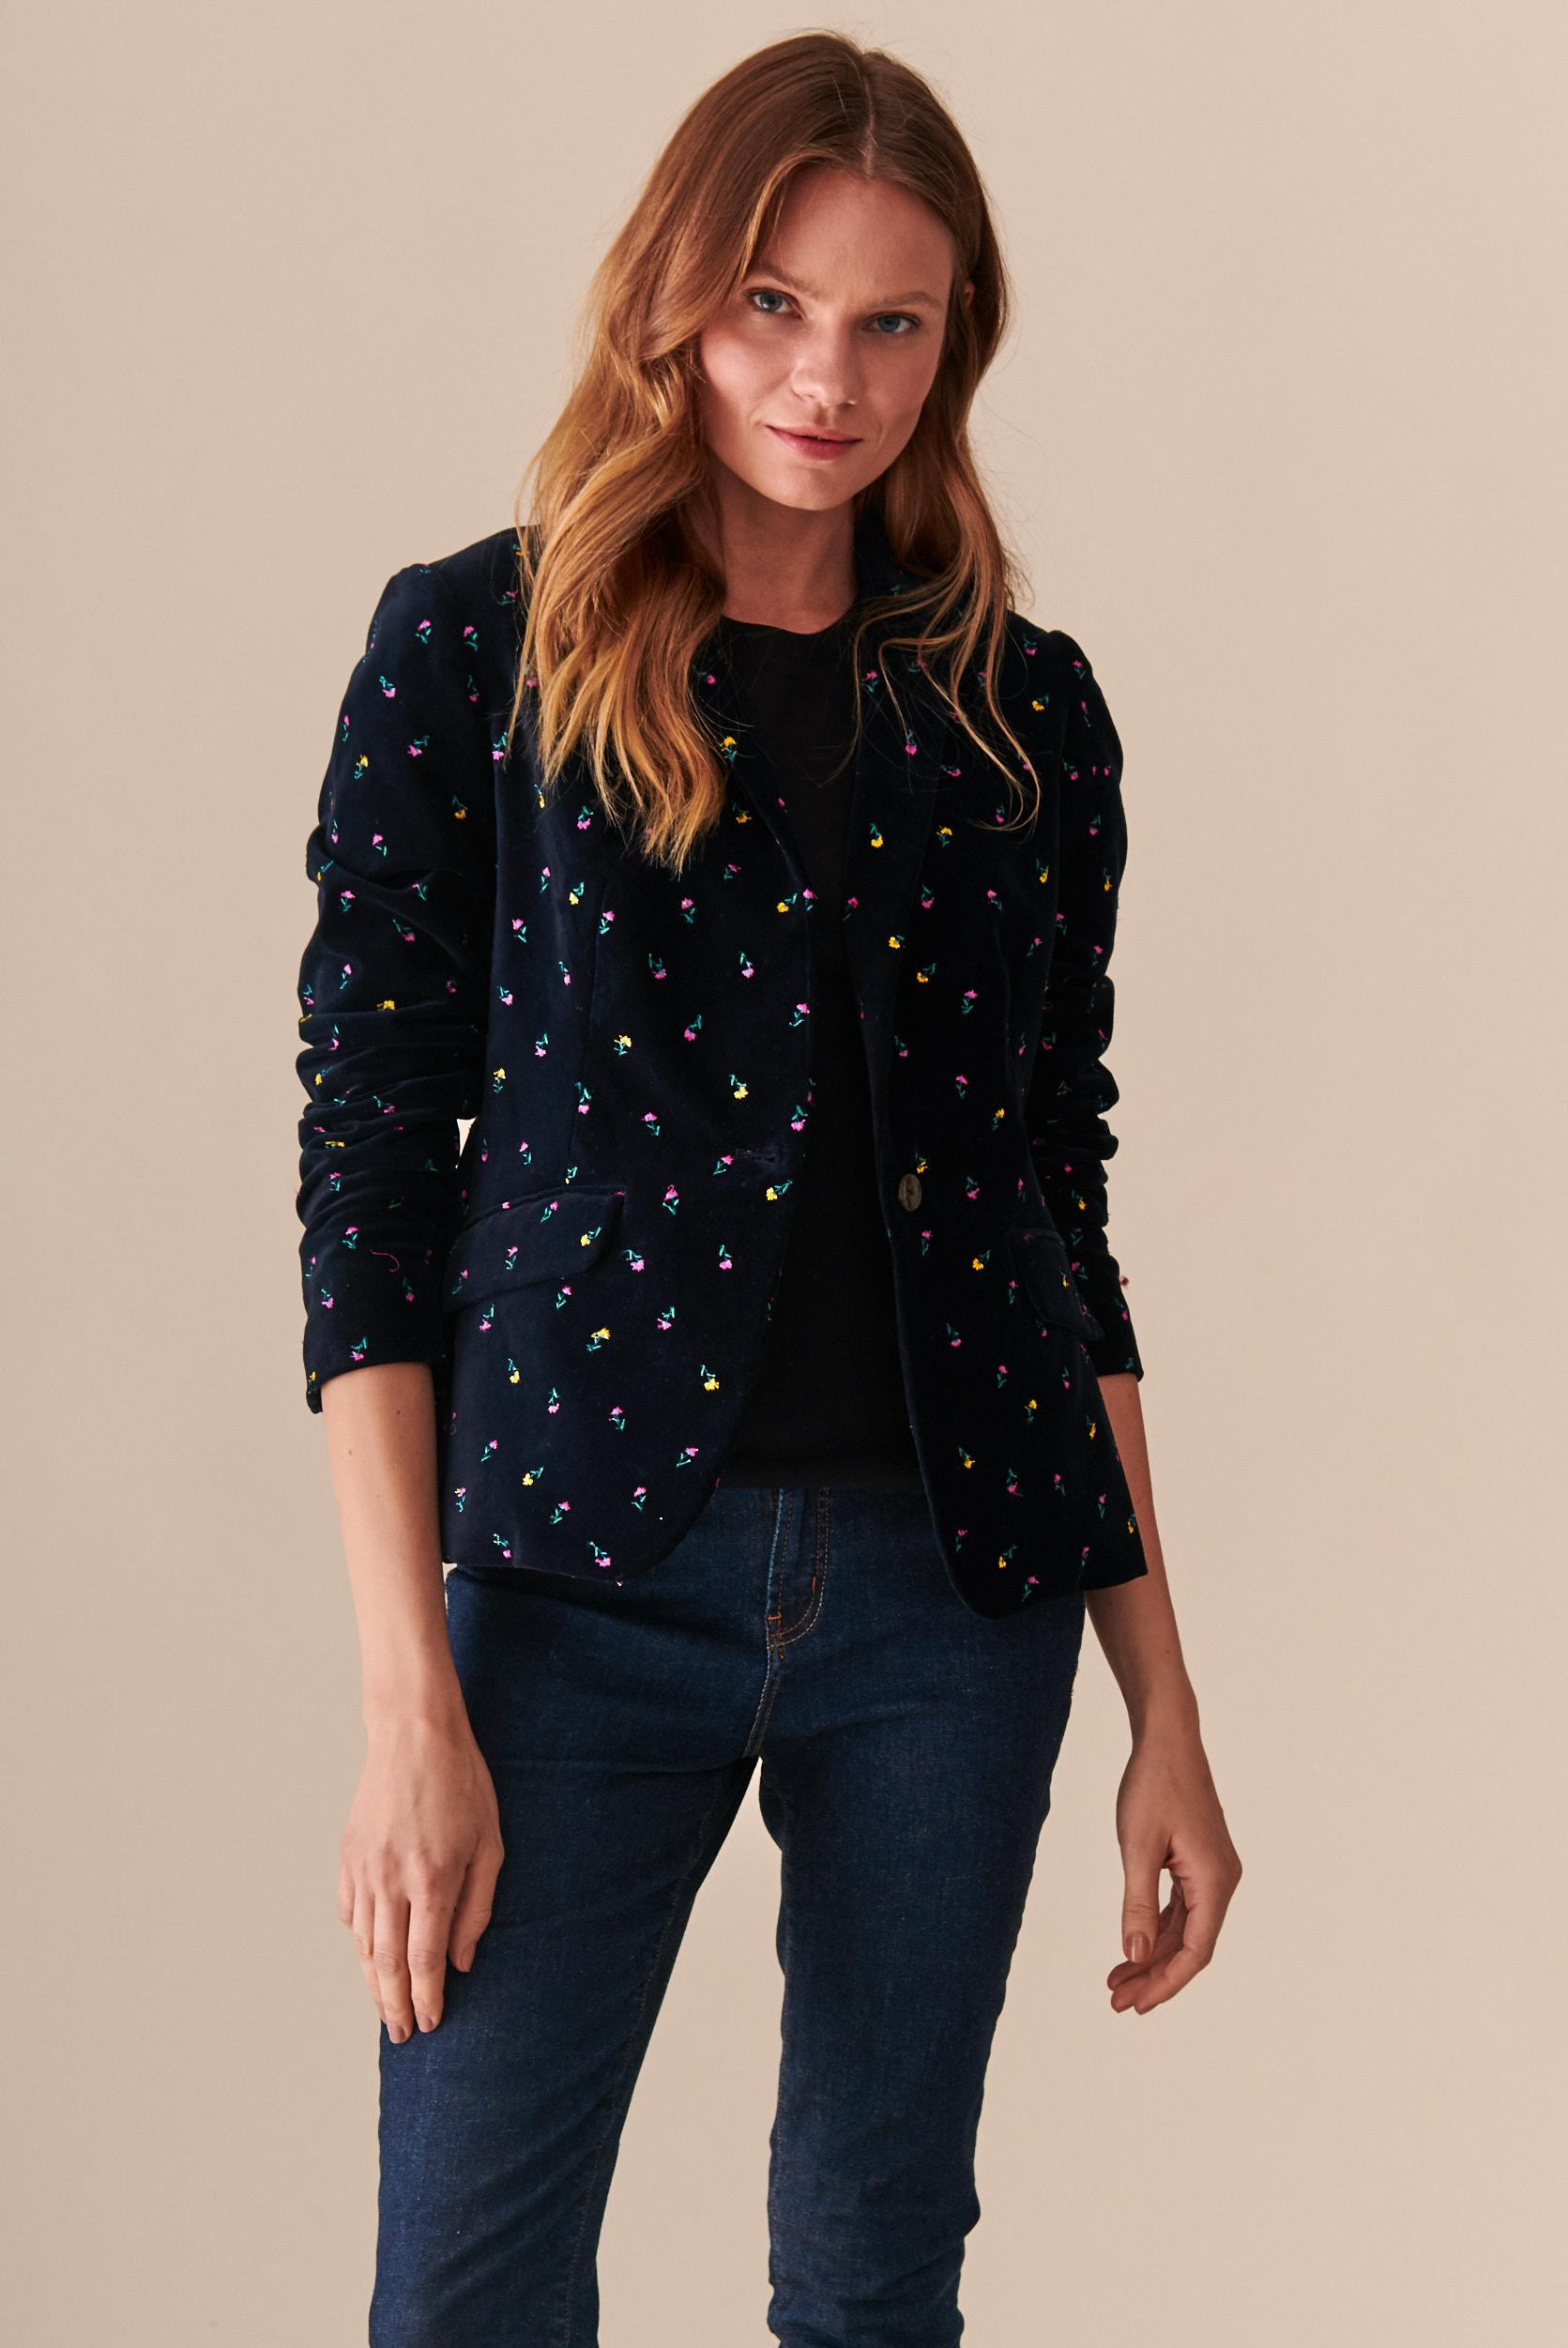 LADIES' VELVET JACKET WITH EMBROIDERY ARWIA 3